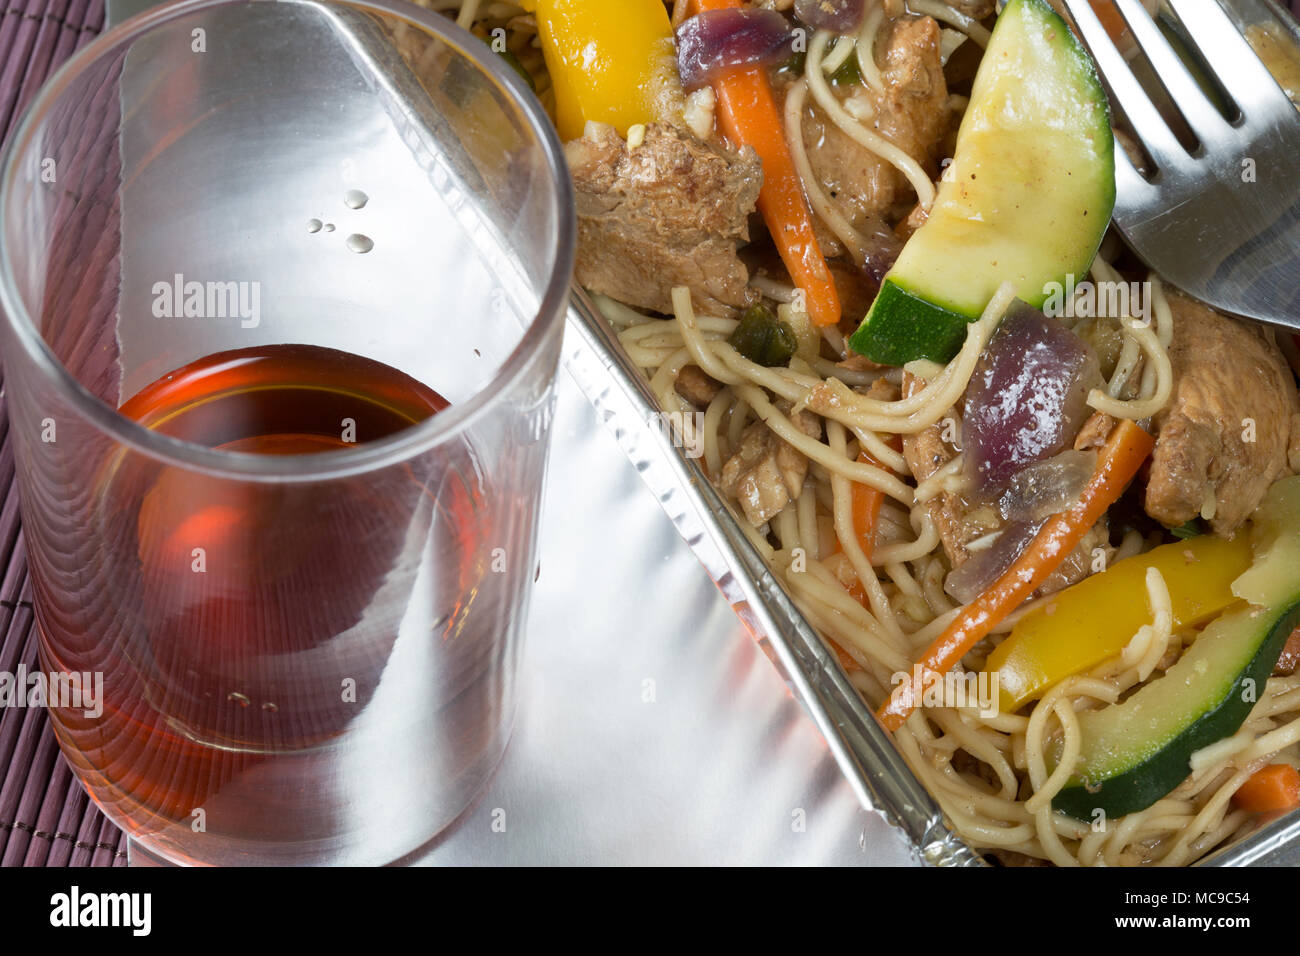 Chinese takeaway of Chicken noodle stir fry in a foil delivery dish with a glass of Saki - Stock Image